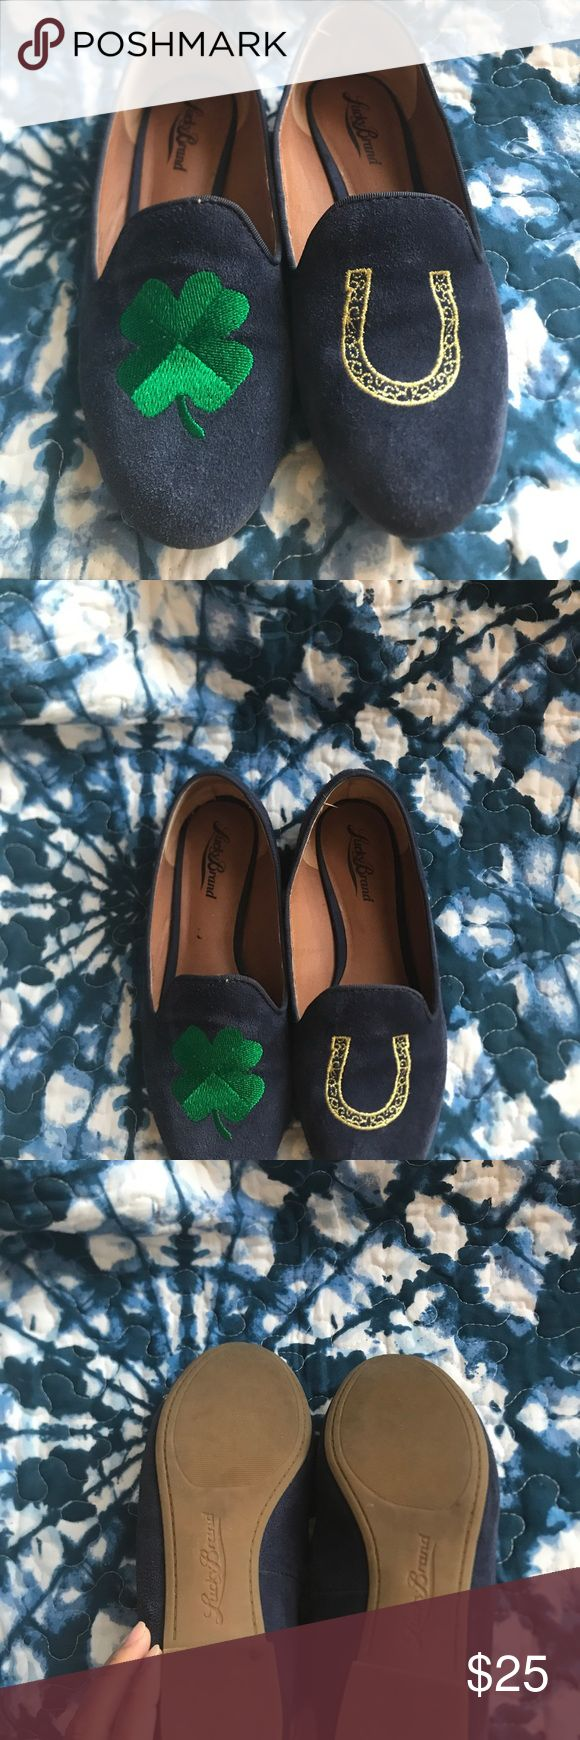 Lucky Brand Loafers Great condition only worn a few times for St Paddys Day! Lucky Brand Shoes Flats & Loafers